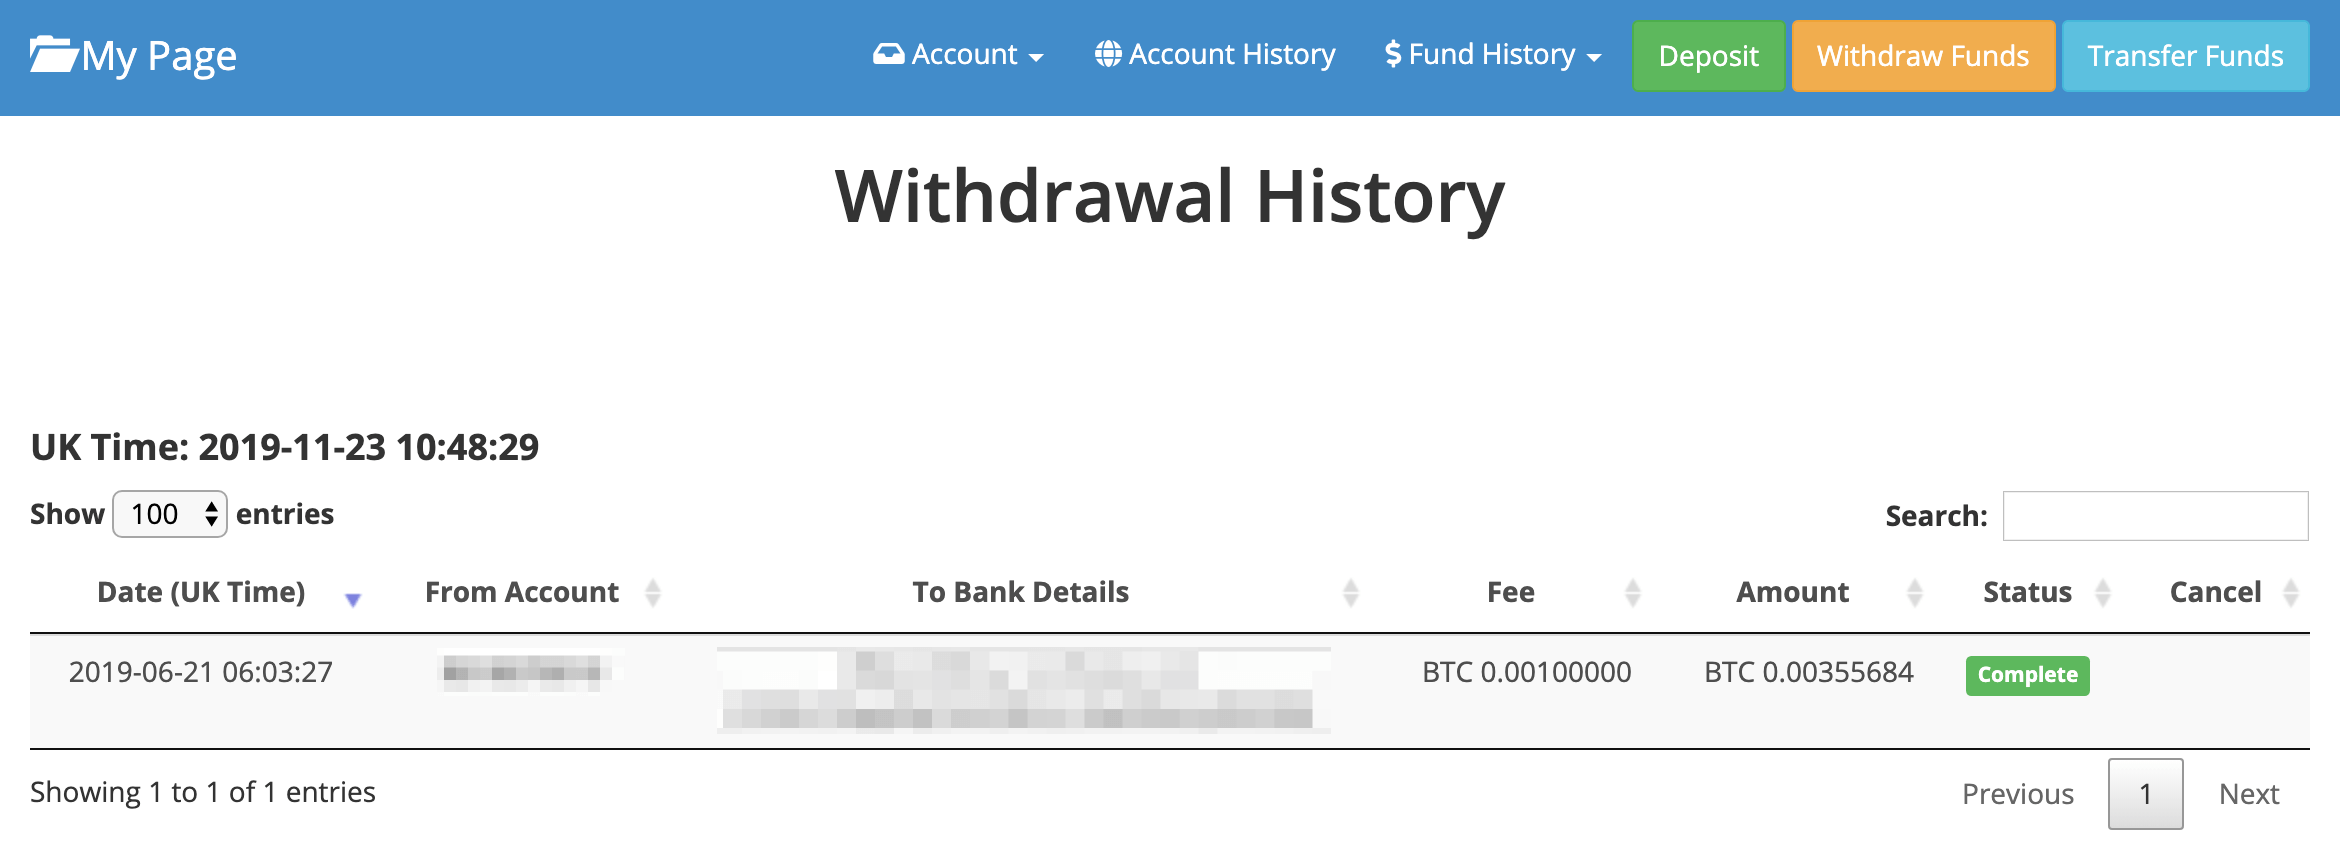 Completion of withdrawal application